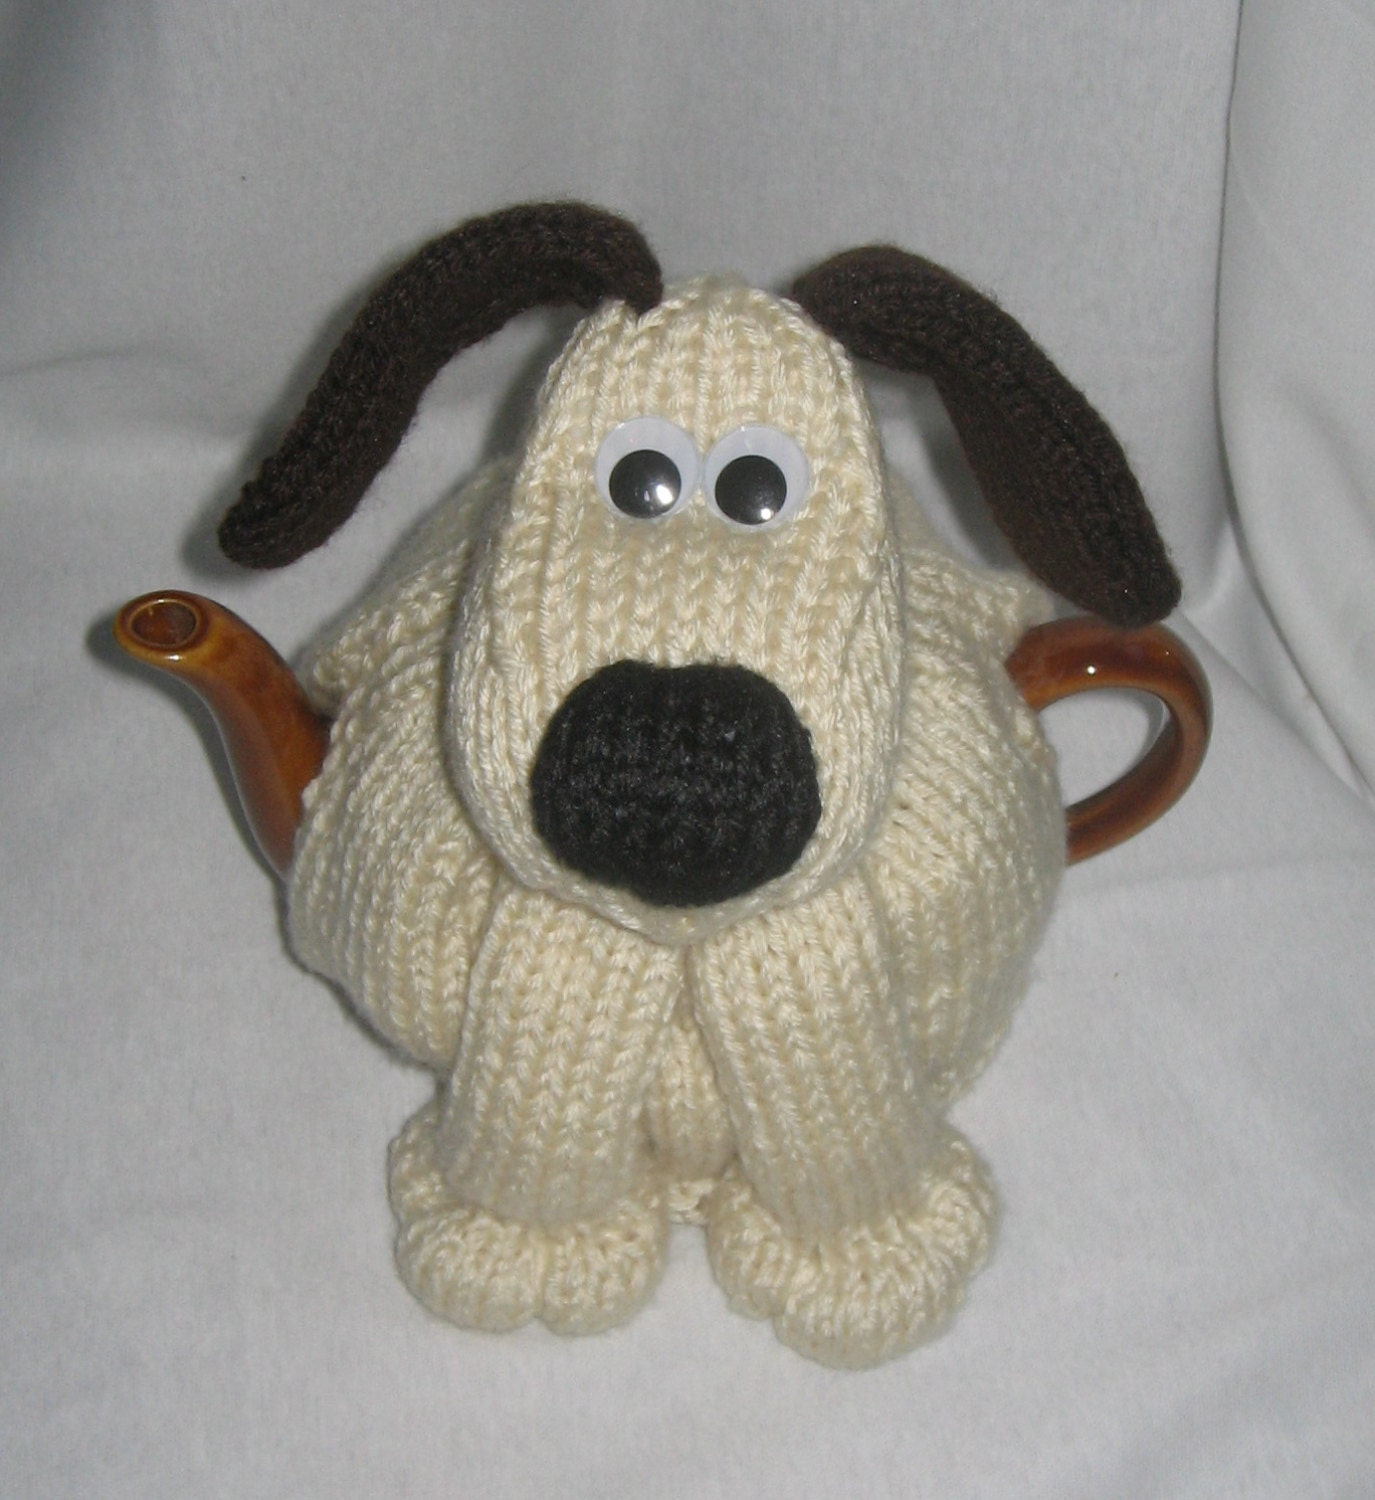 Knitting Pattern For Teacup Dog : Dog Tea Cosy KNITTING PATTERN downloadable file by ...